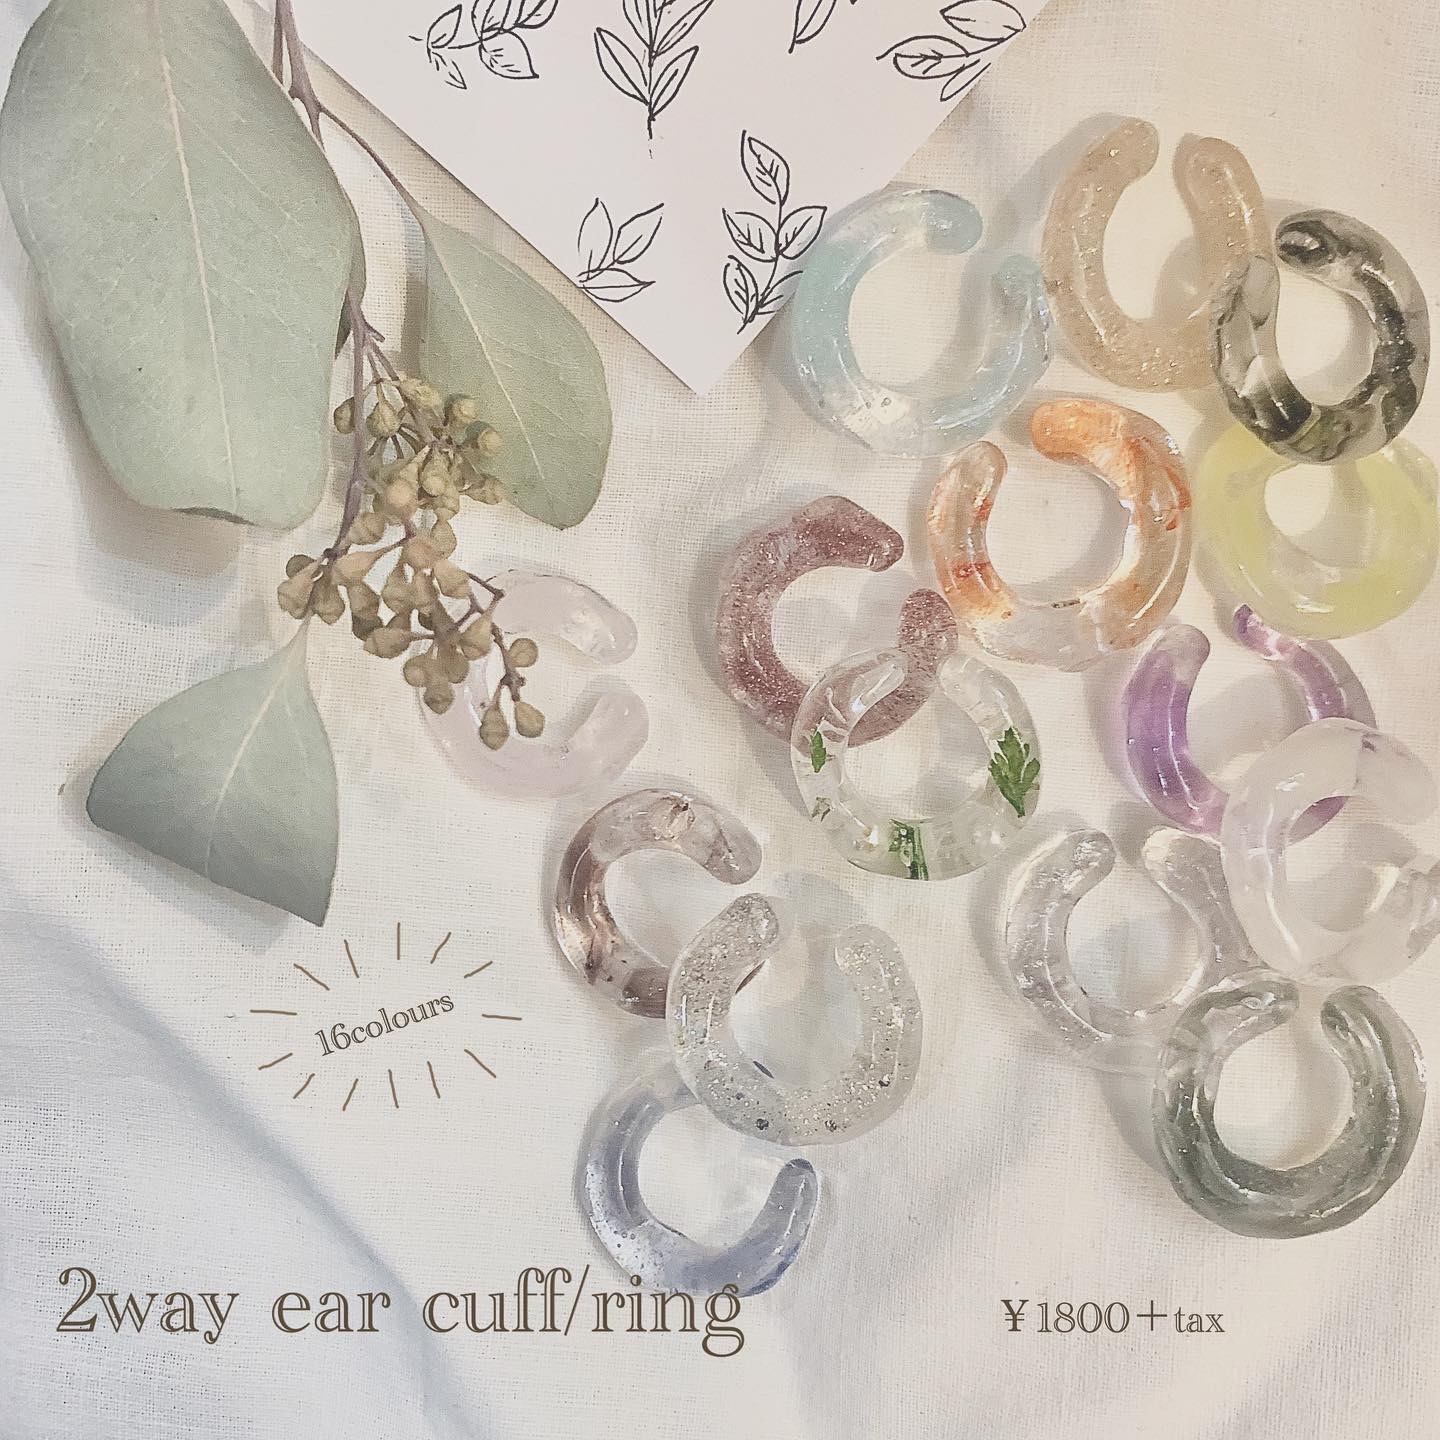 9/7 new color in꙳ 2way ear cuff/ring